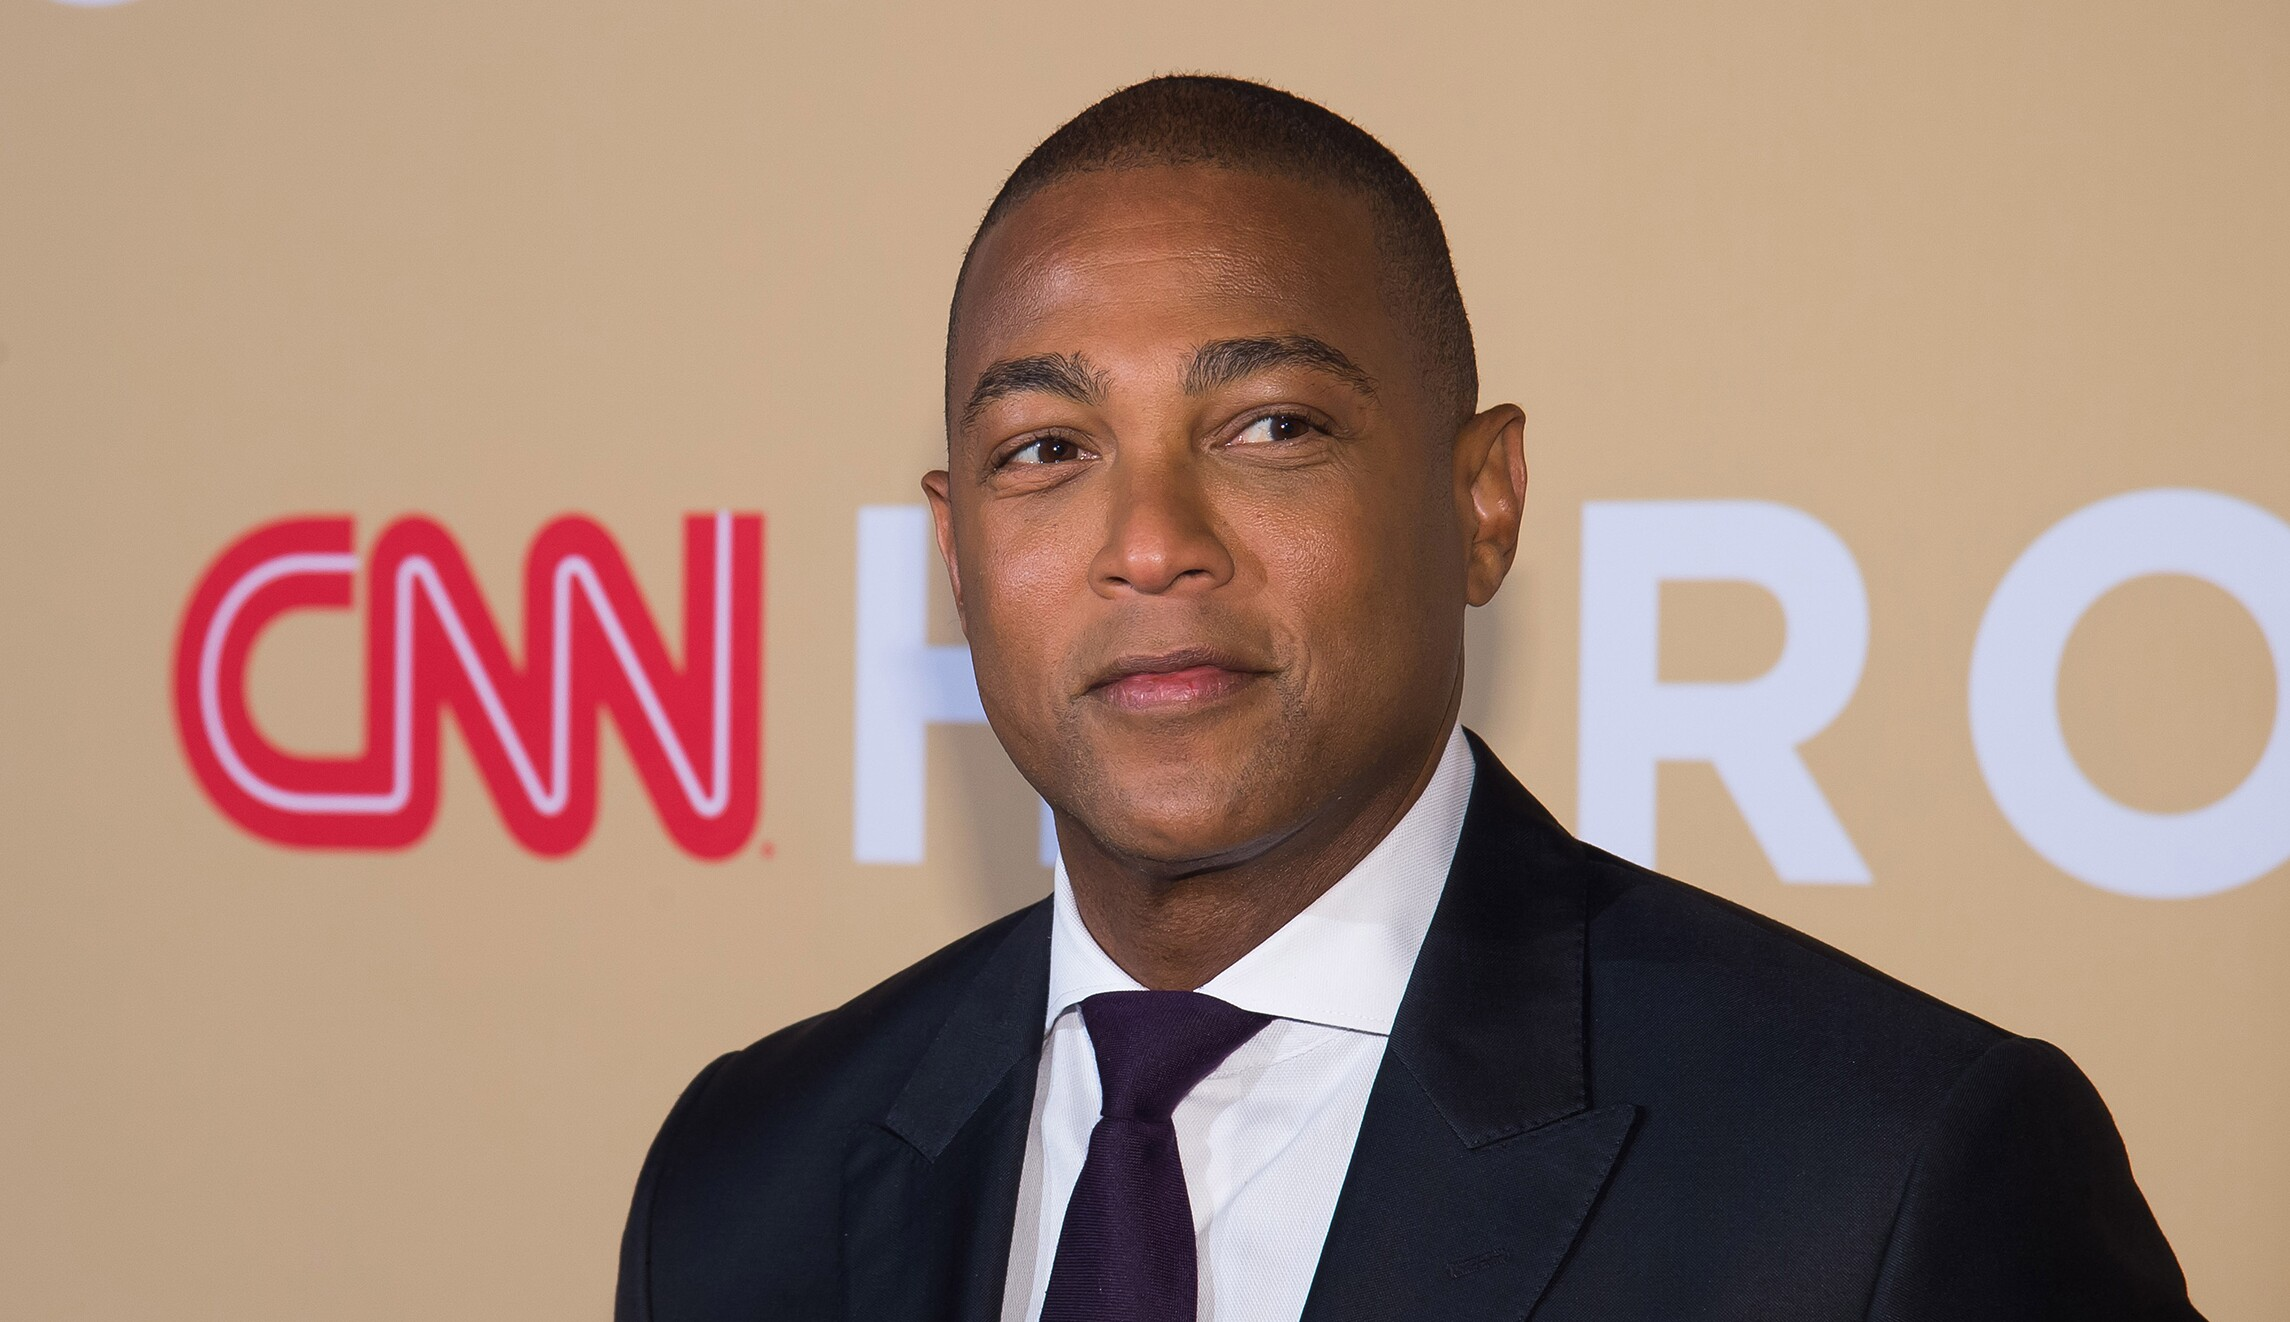 CNN S Don Lemon Trump Traffics In Racism And Is Fueled By Bullying